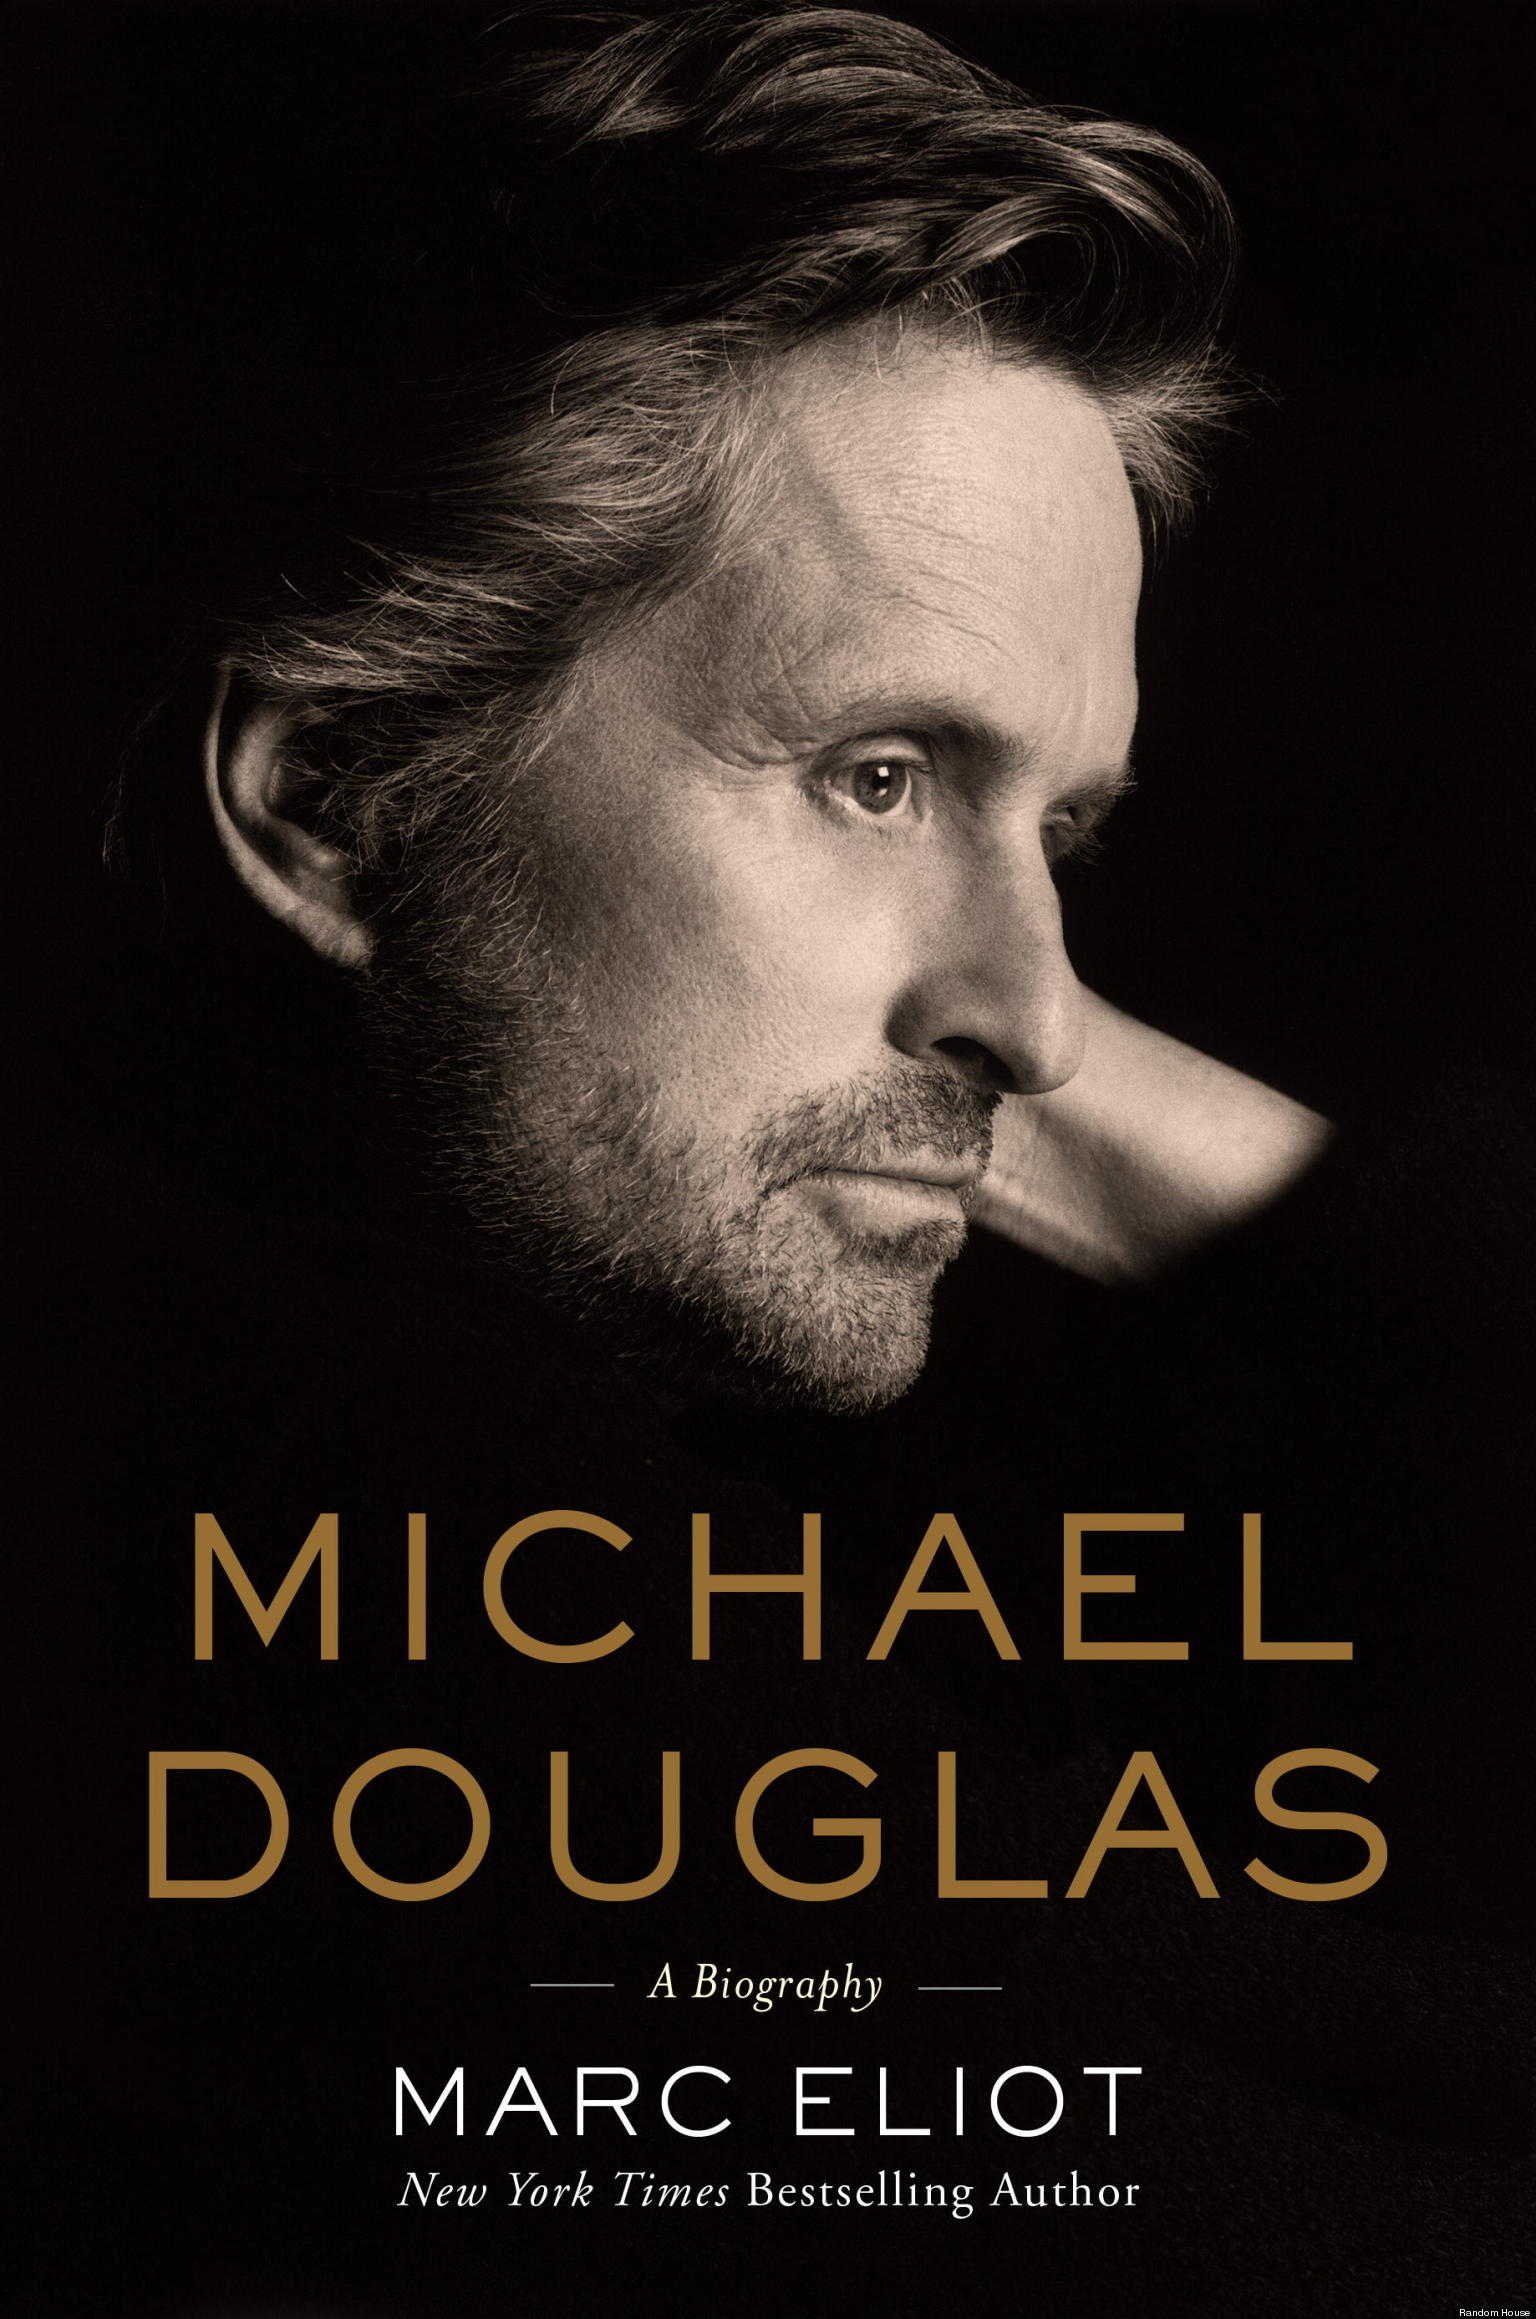 Was michael douglas a sex addict